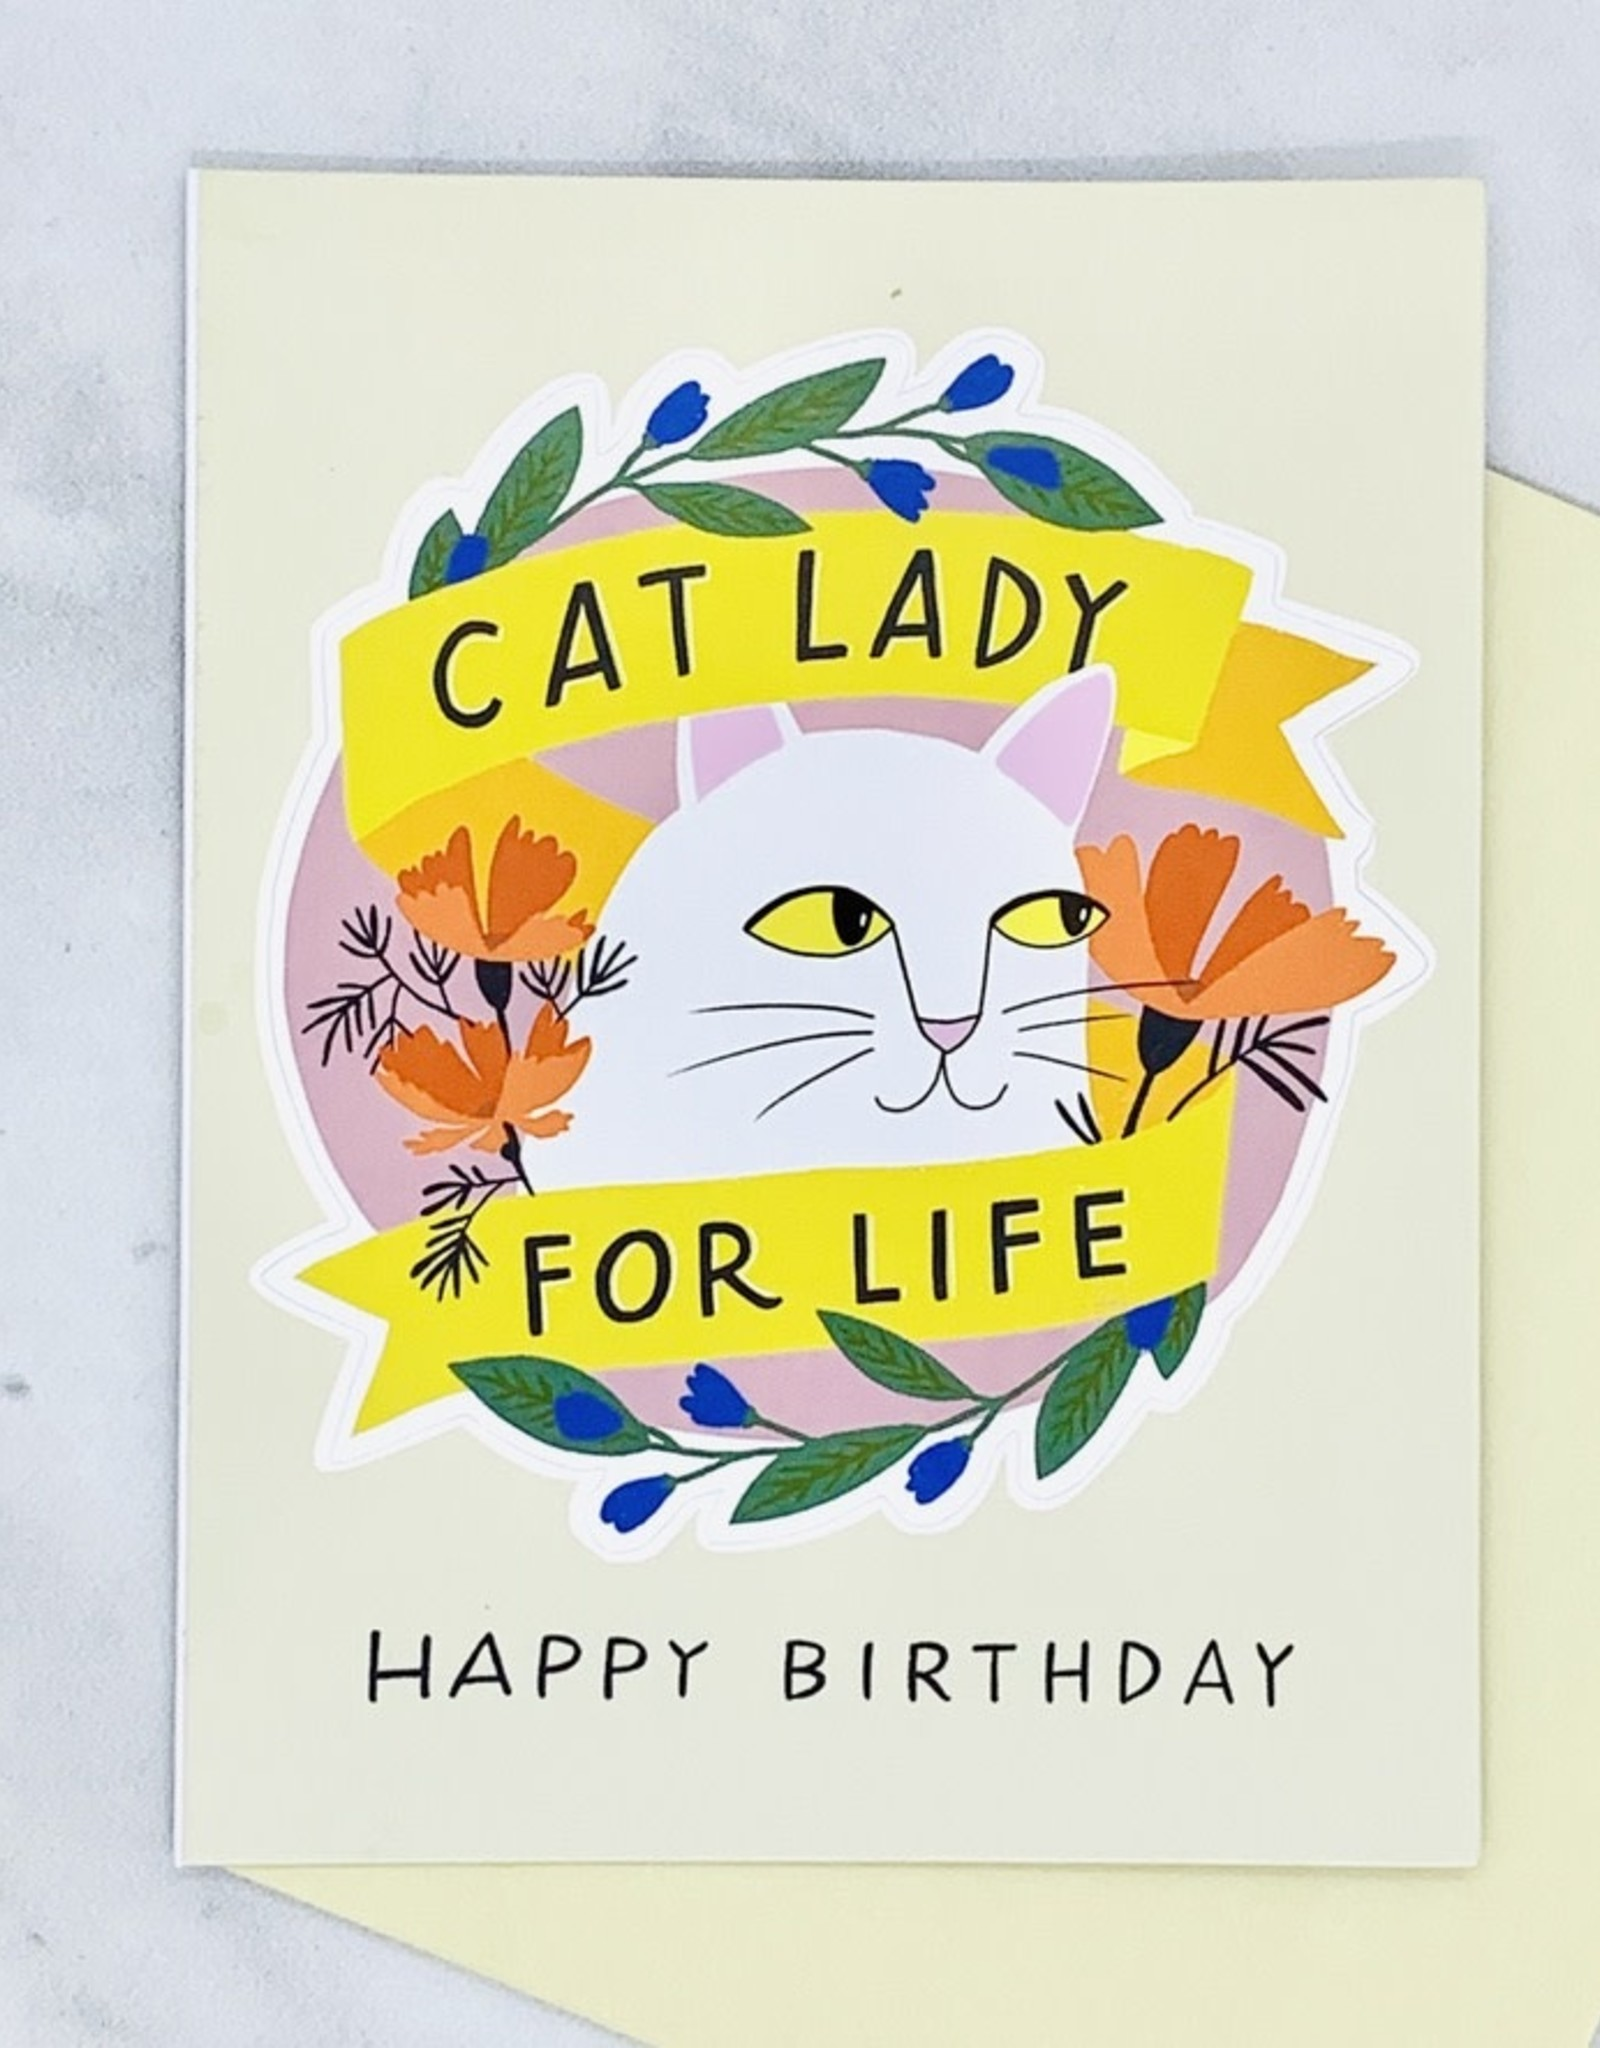 Cat Lady for Life Sticker Birthday Card